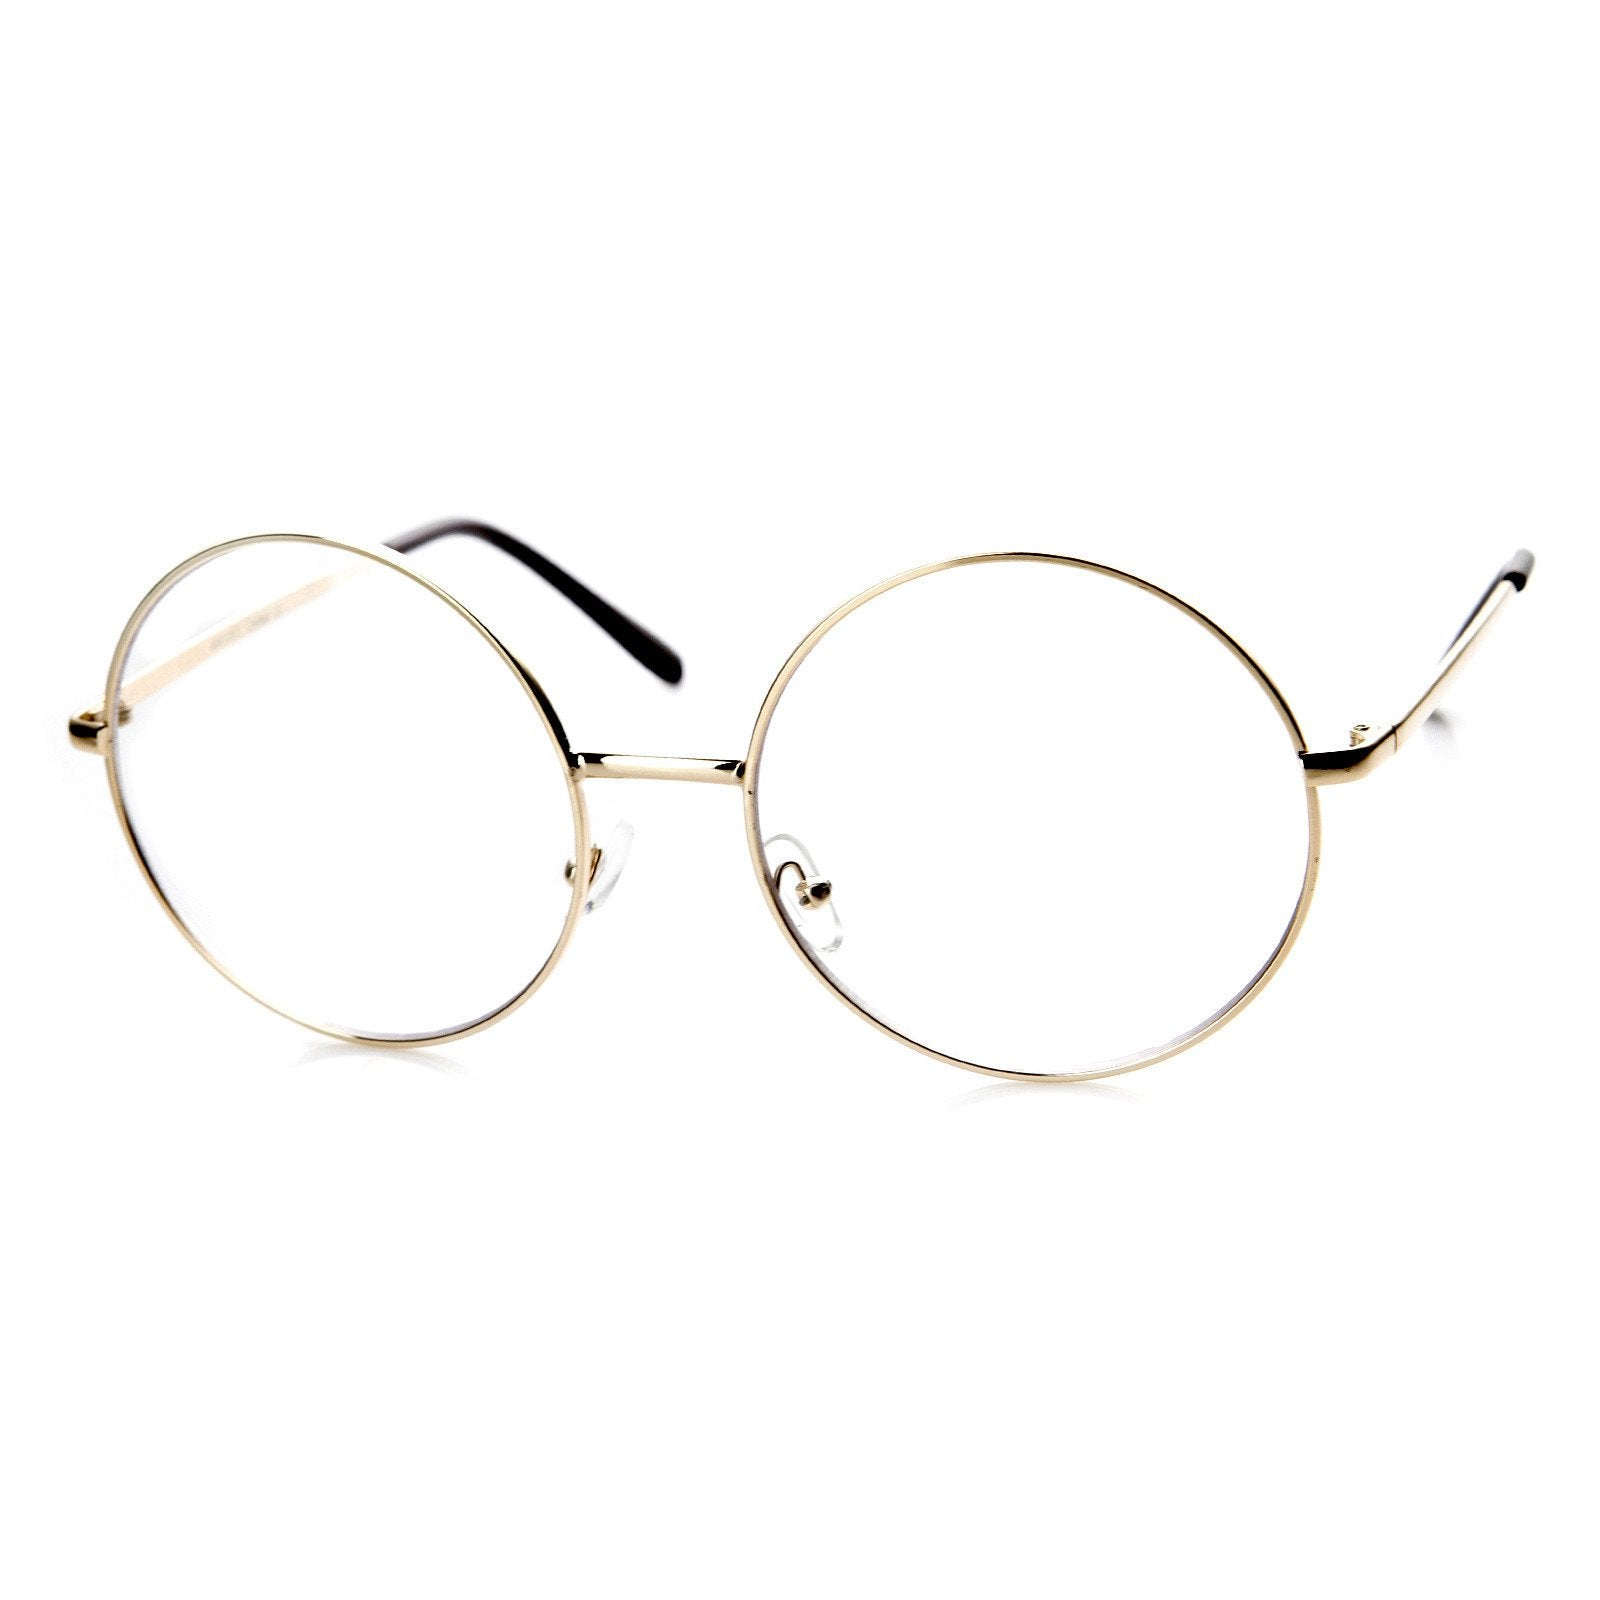 08868eb31ae96 ... Vintage Era Large Round Metal Clear Lens Glasses 8714 · Gold · Gold